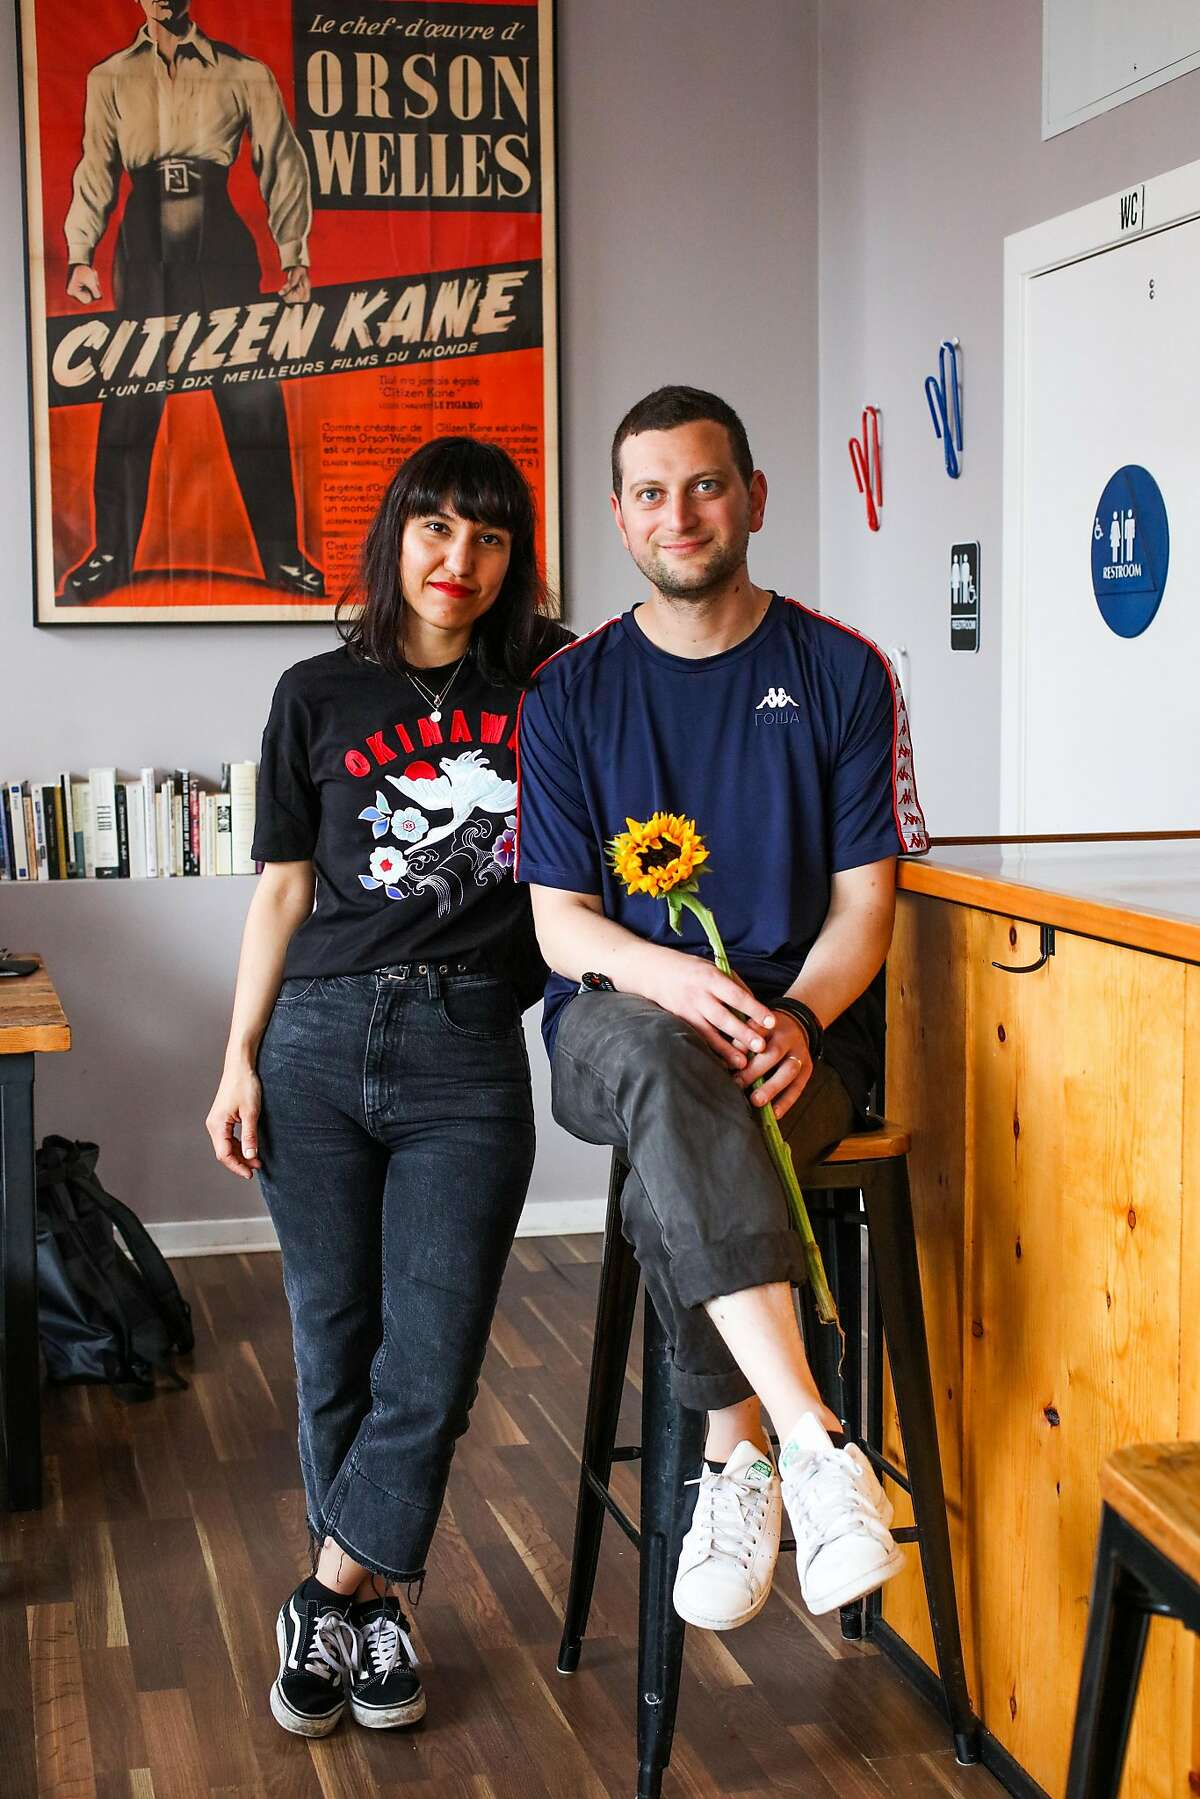 Cigdem Onat Salur and Cem Salur, owners of Orson's Belly pose for a portrait at their cafe in San Francisco, California, on Wednesday, July 4, 2018.